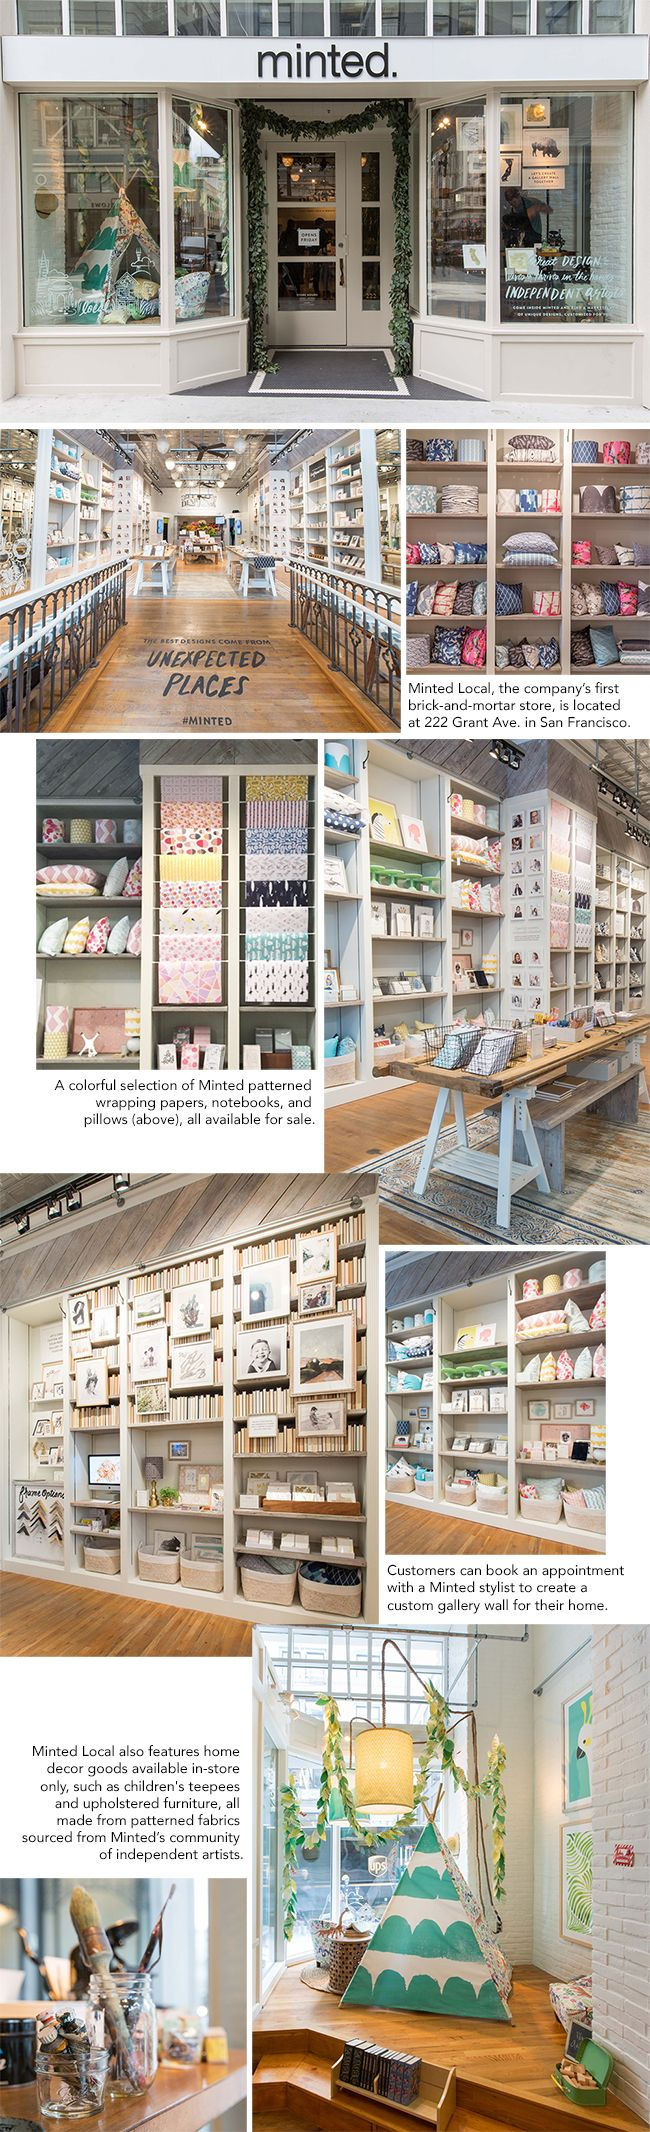 Minted+Launches+Minted+Local+(Our+First+Retail+Store!)+by+Heather+Lee+for+Julep